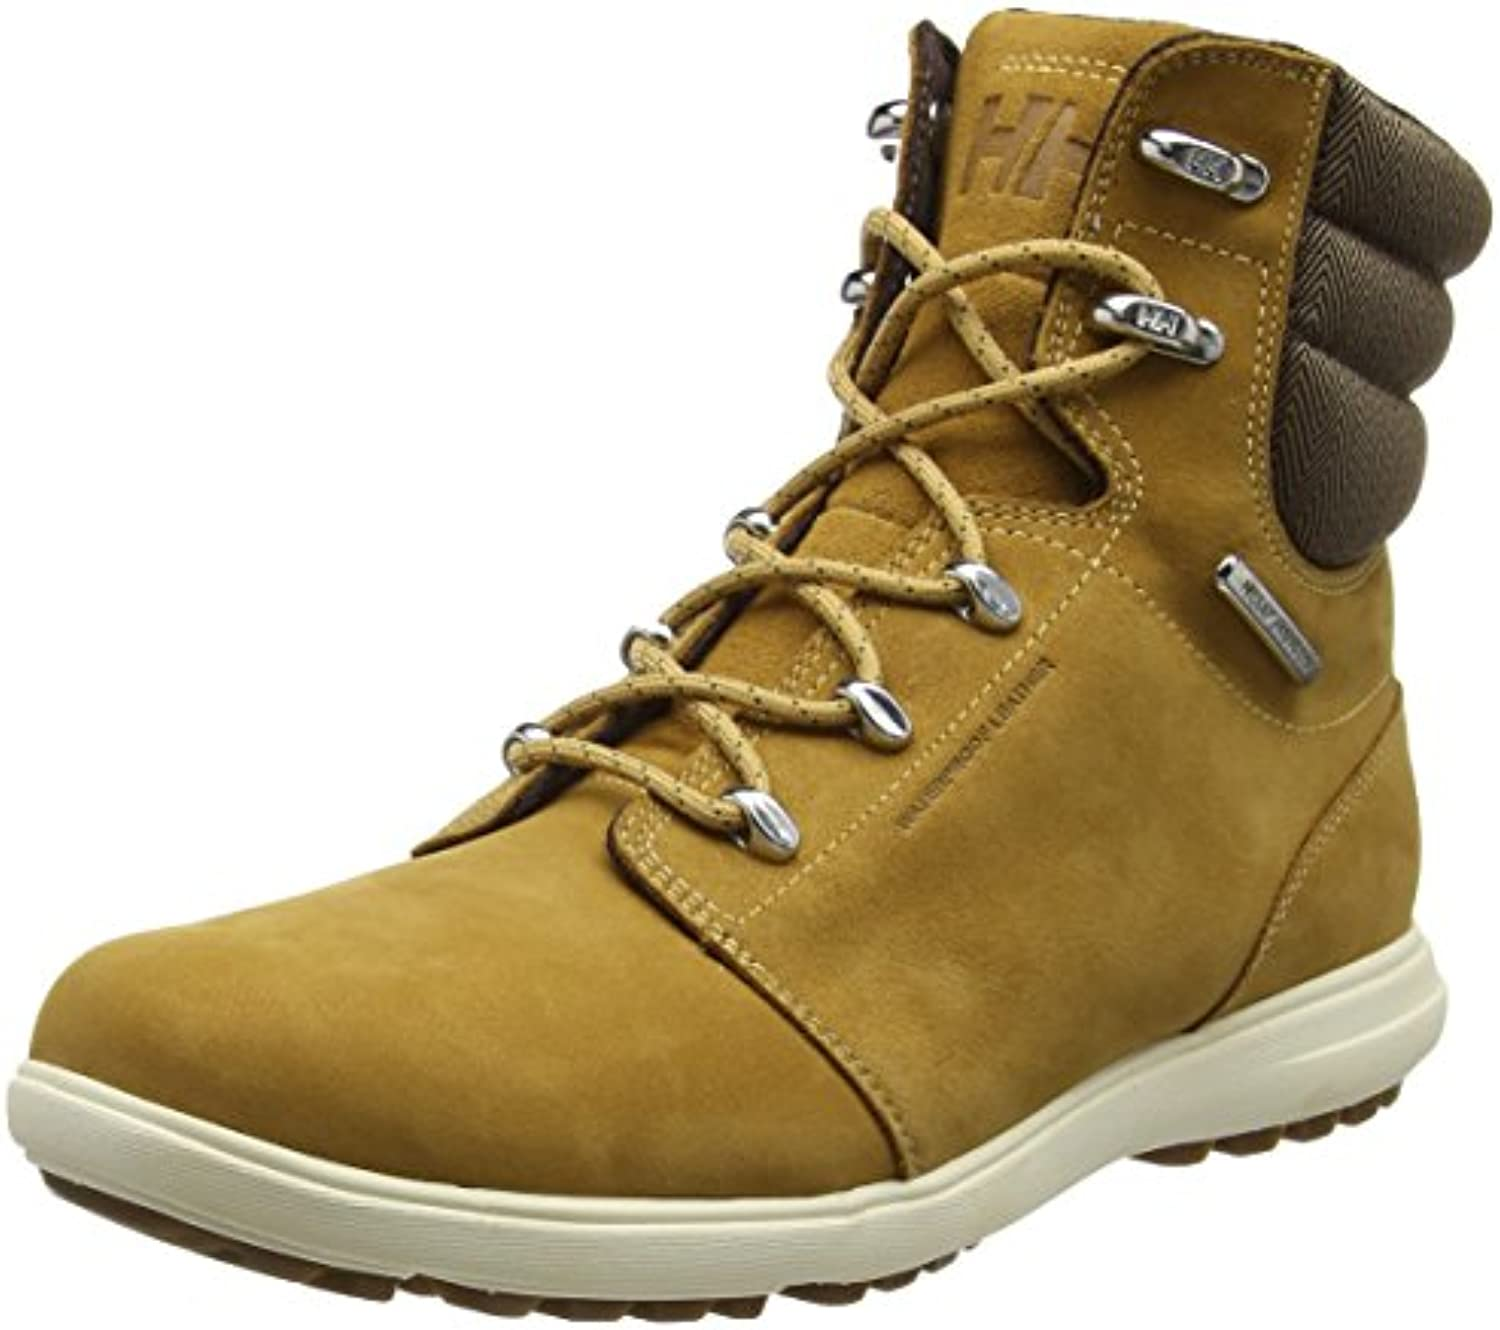 Helly Hansen Herren A.s.t 2 Chukka Boots  New Wheat/Coffee Bean/Angora/Sperry GumHelly Hansen Herren Chukka Boots